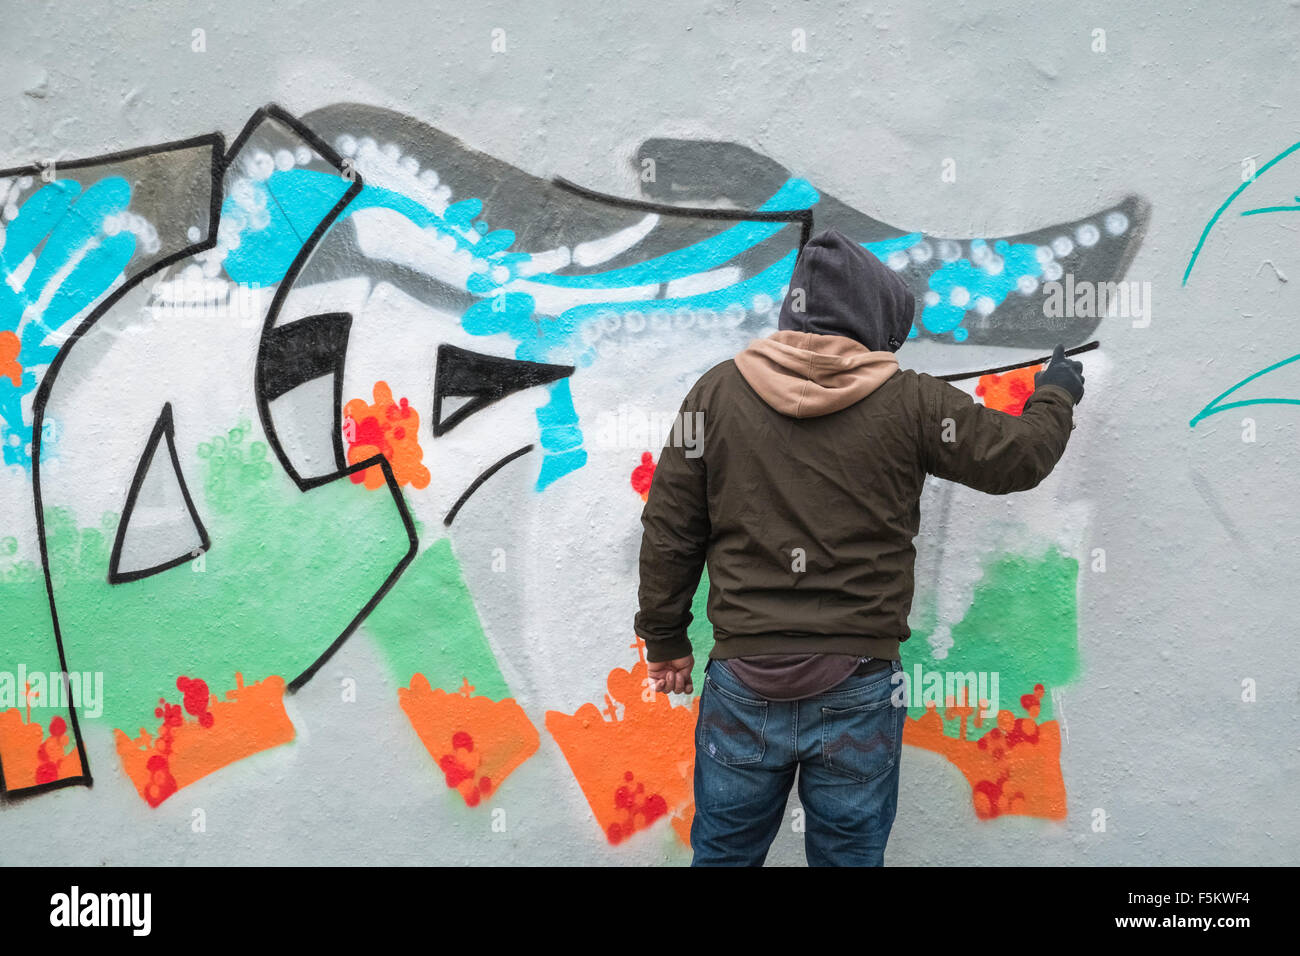 Graffiti artist spray painting part of former berlin wall mauerpark prenzlauer berg berlin